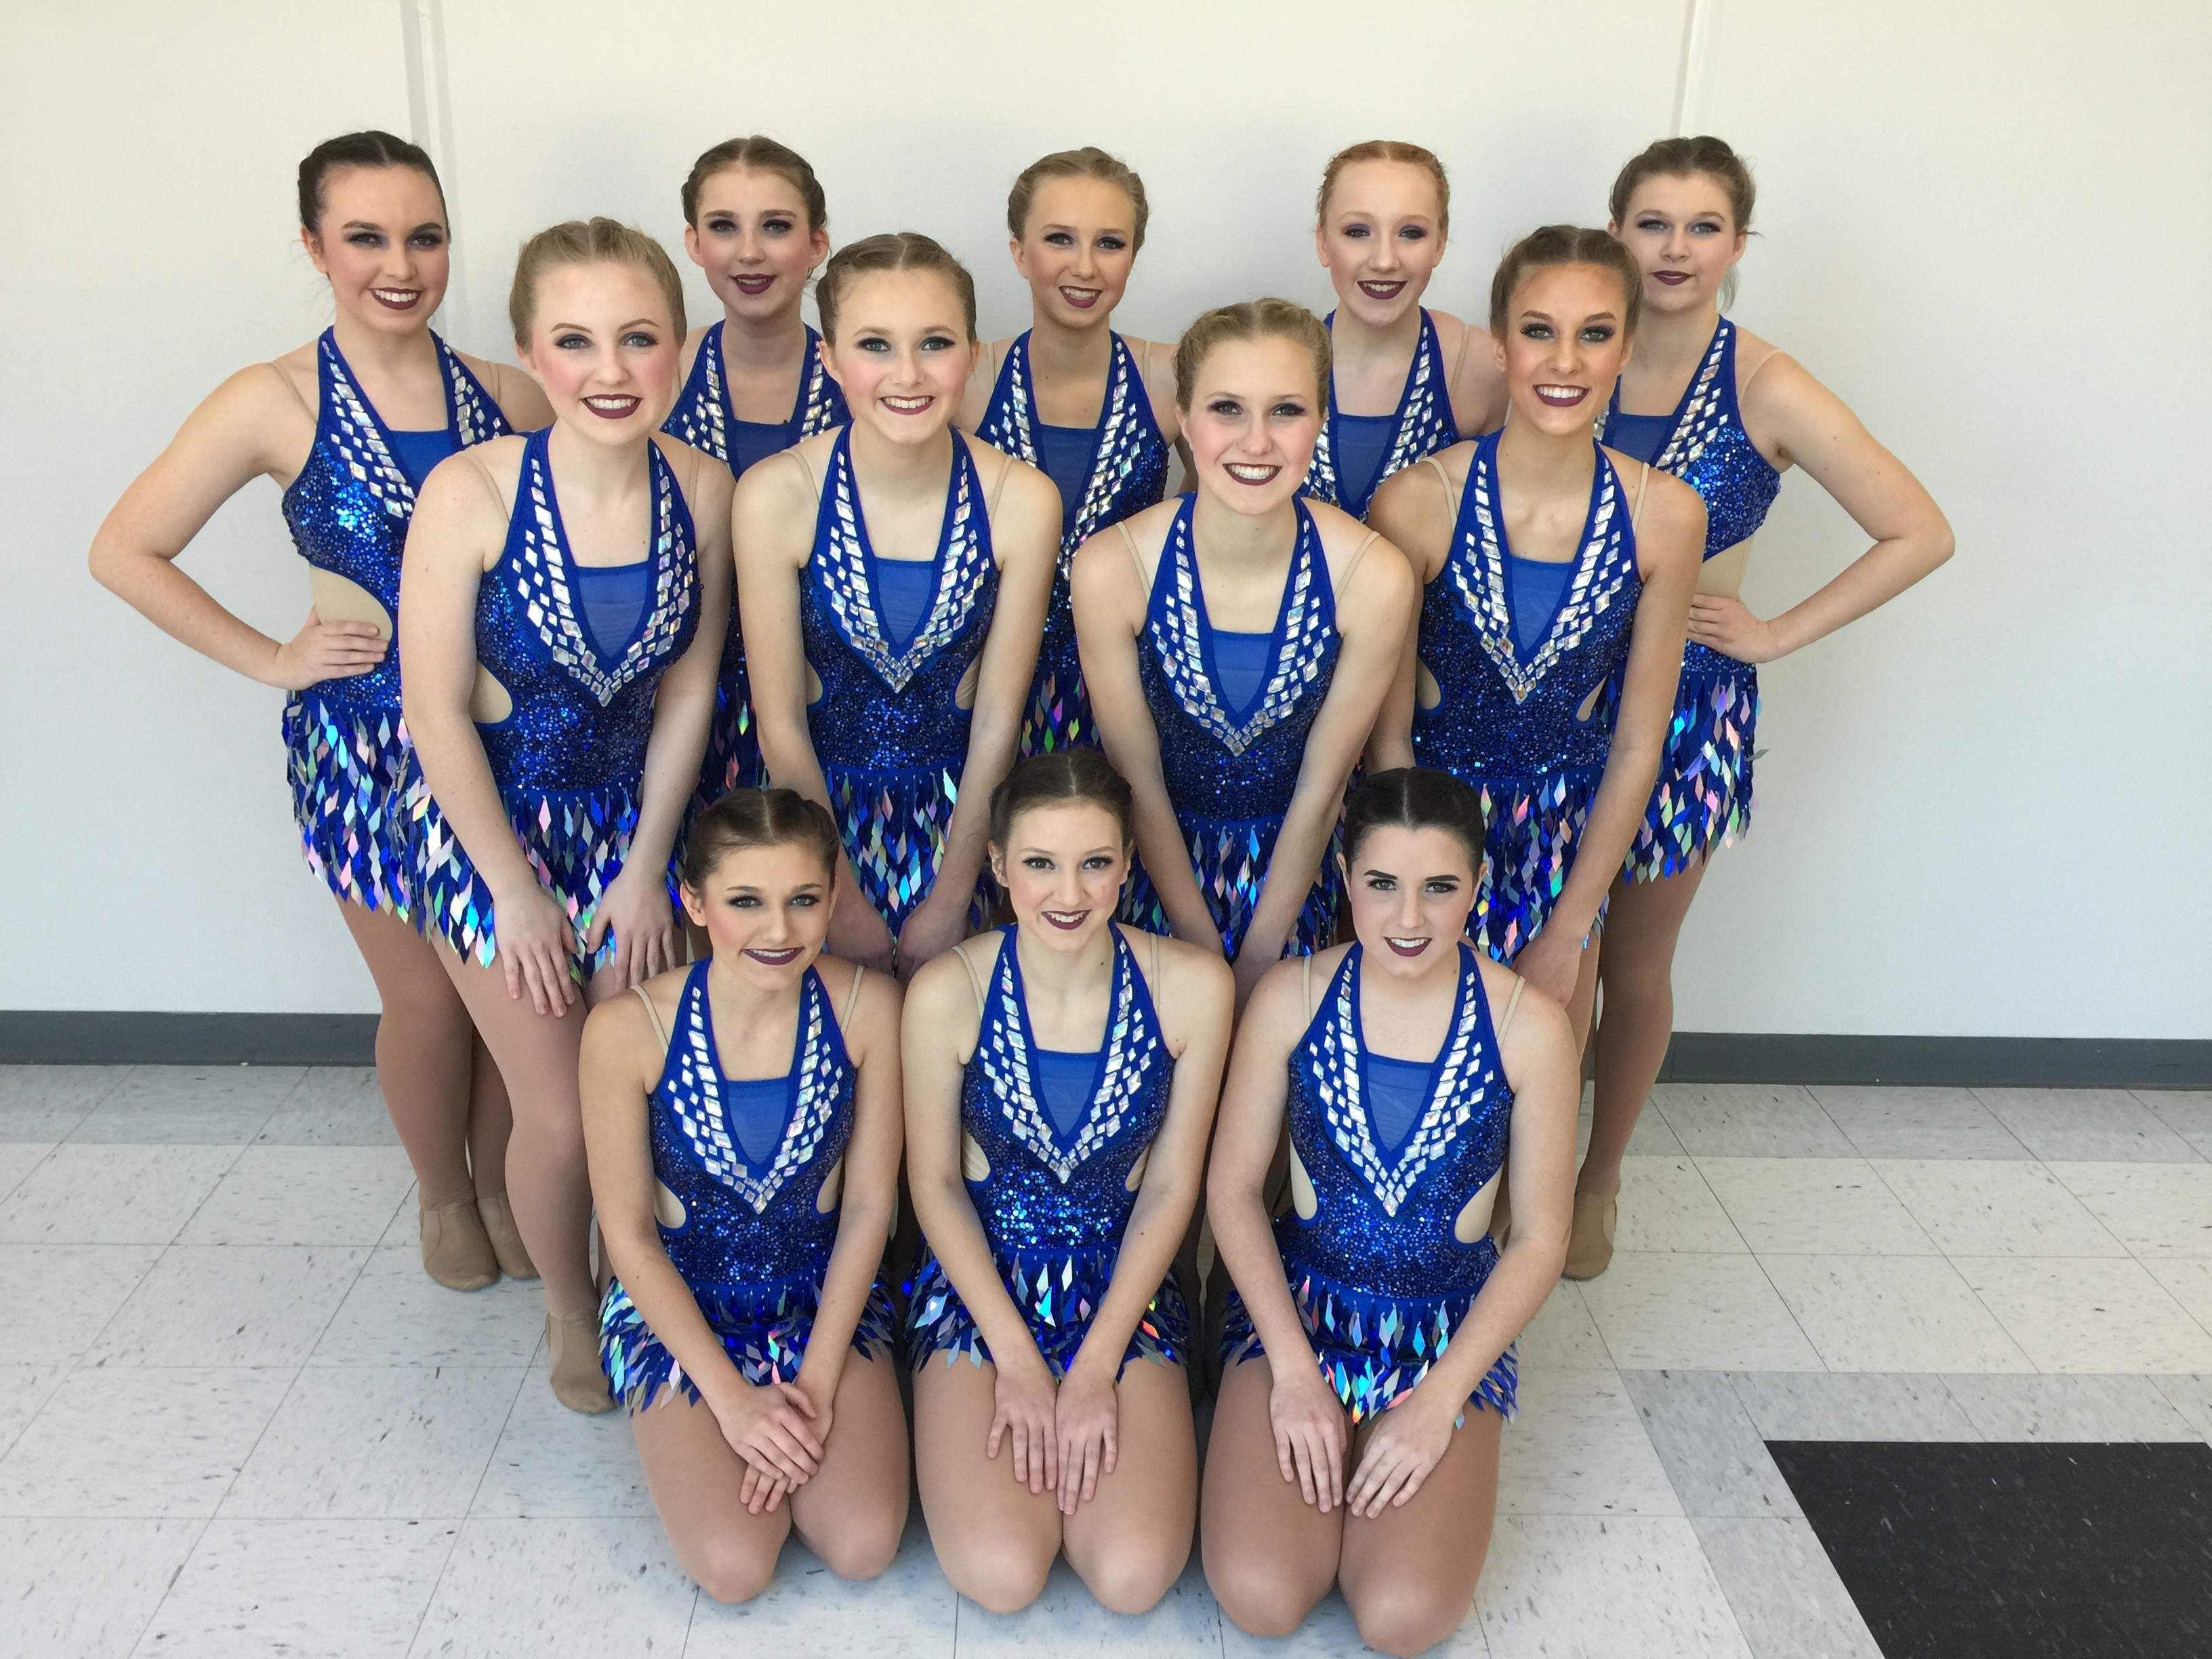 The Pinckneyville Poms will compete in Springfield on Saturday in the Illinois Drill Team Association's state finals.